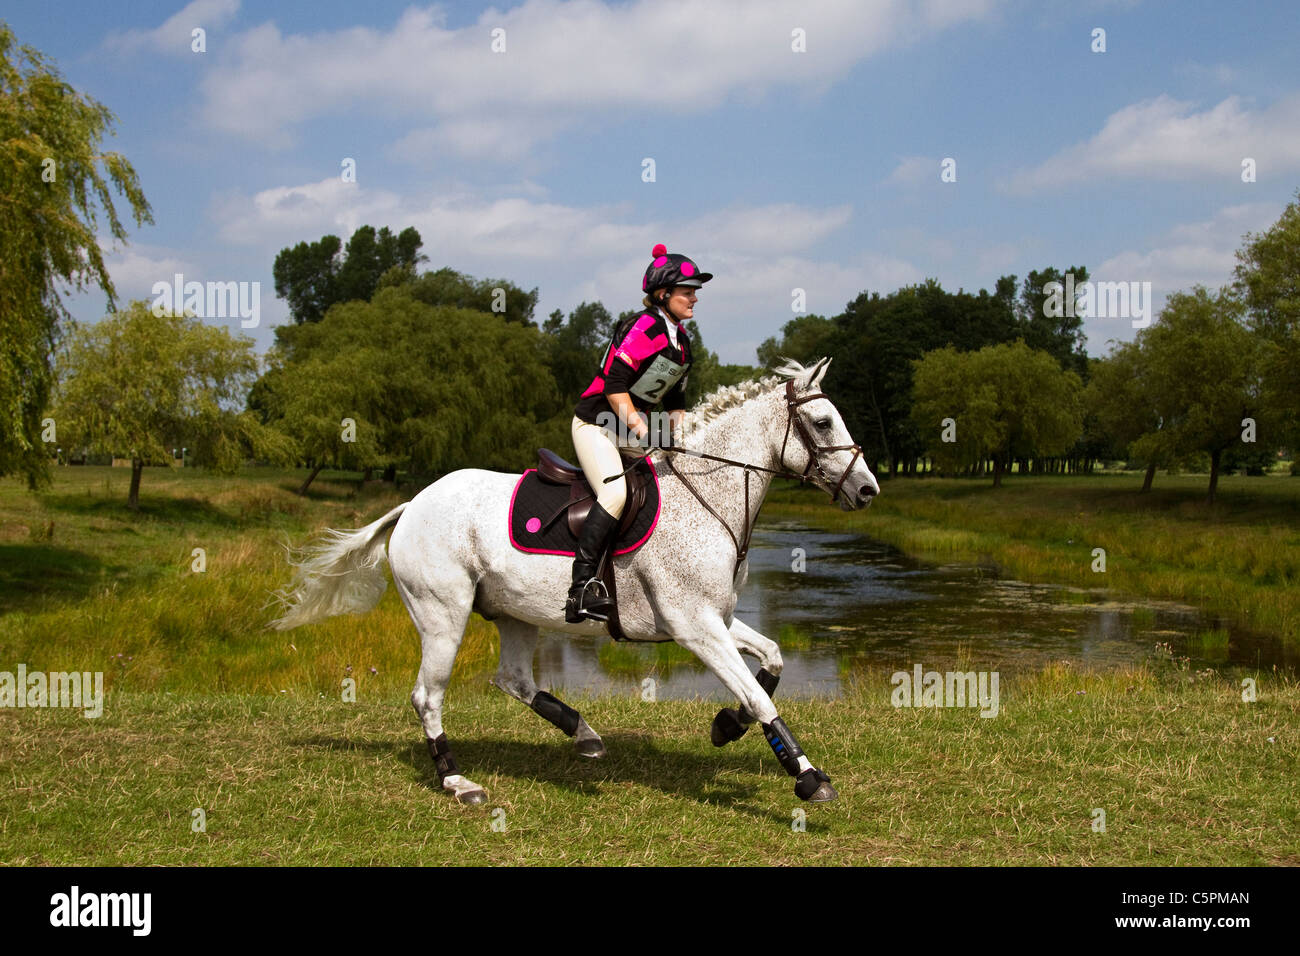 Cross-country Lakeside Gallop_Cross Country at the Subaru Cholmondeley Castle Horse Trials _ Sat 30th-Sun 31st July, - Stock Image